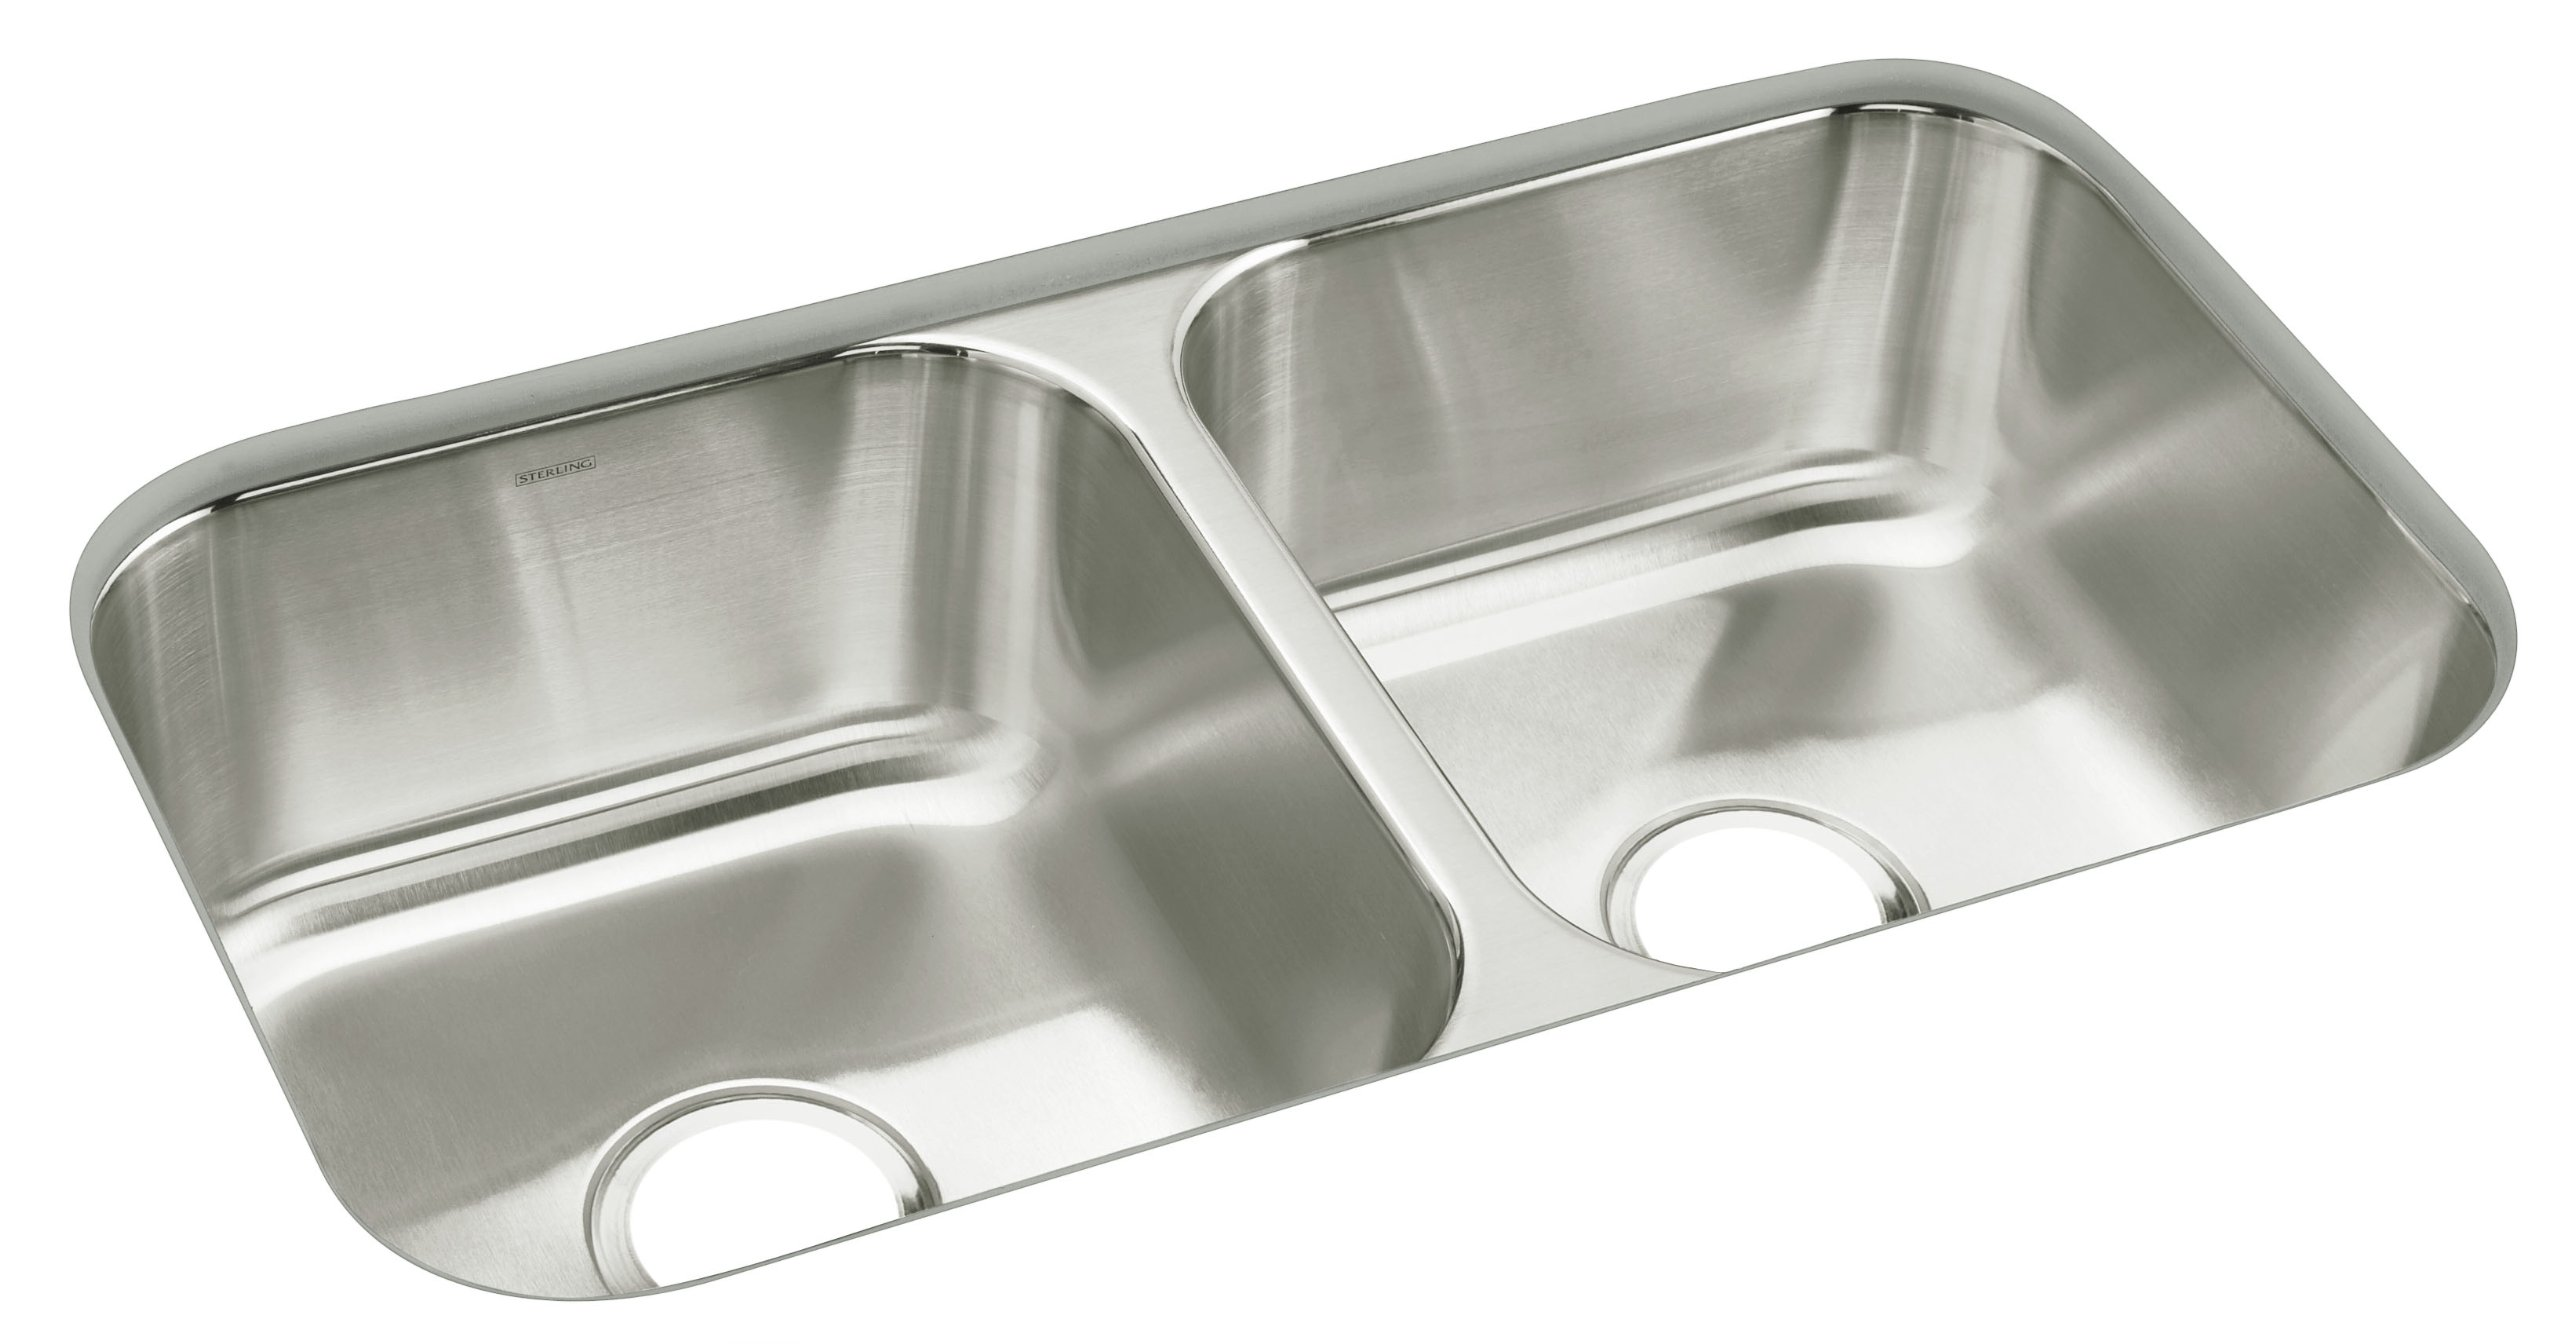 STERLING 11444-NA McAllister 32-inch by 18-inch Under-mount Double Equal Bowl Kitchen Sink, Stainless Steel